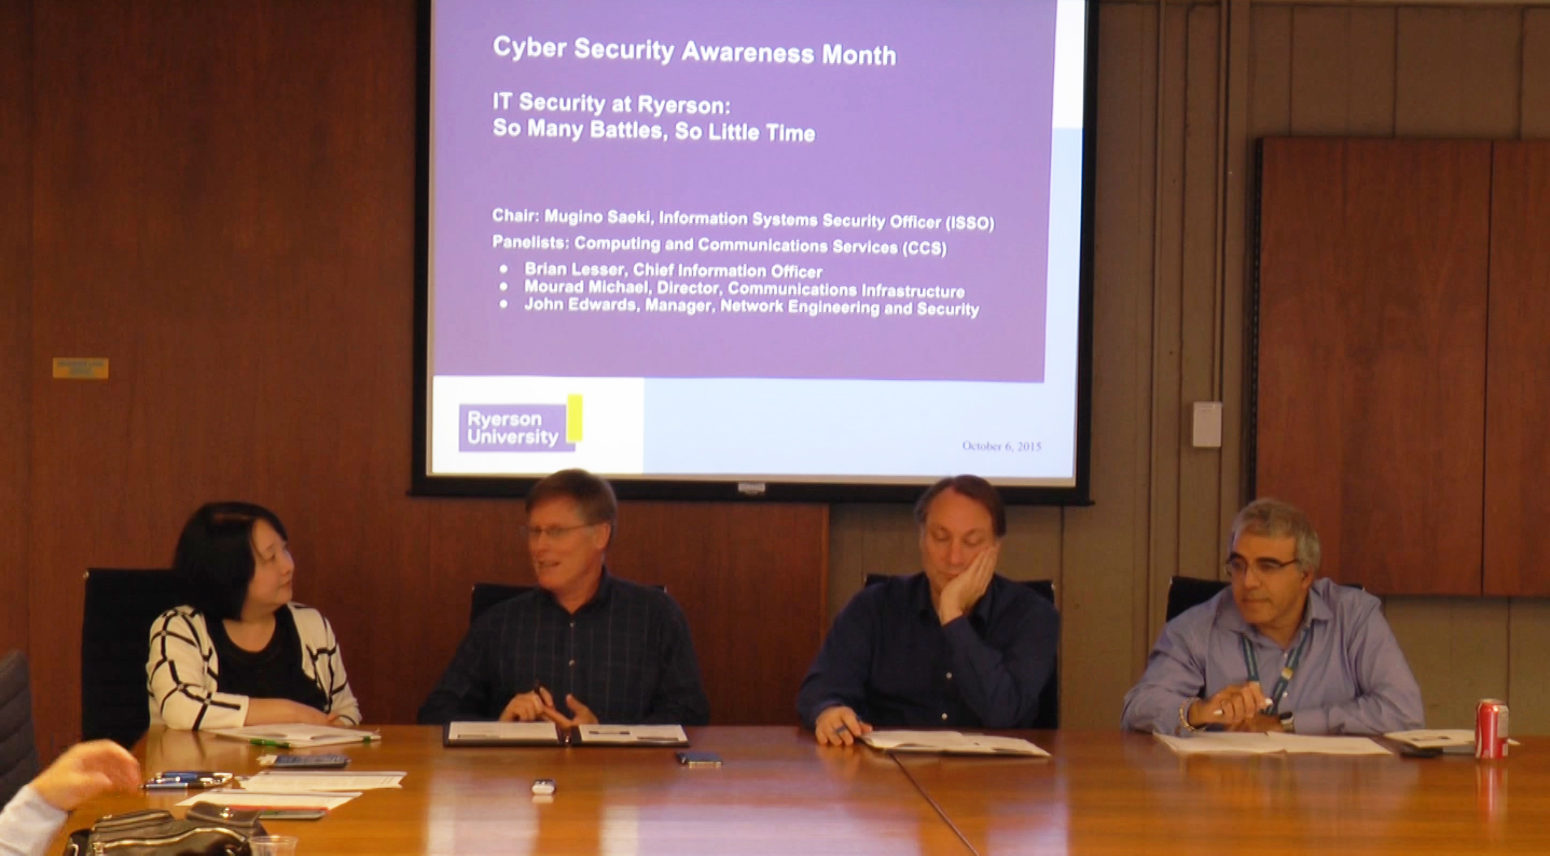 A panel on cyber security was held at Ryerson Oct. 6. (Aengus Mulroney / Ryersonian Staff)